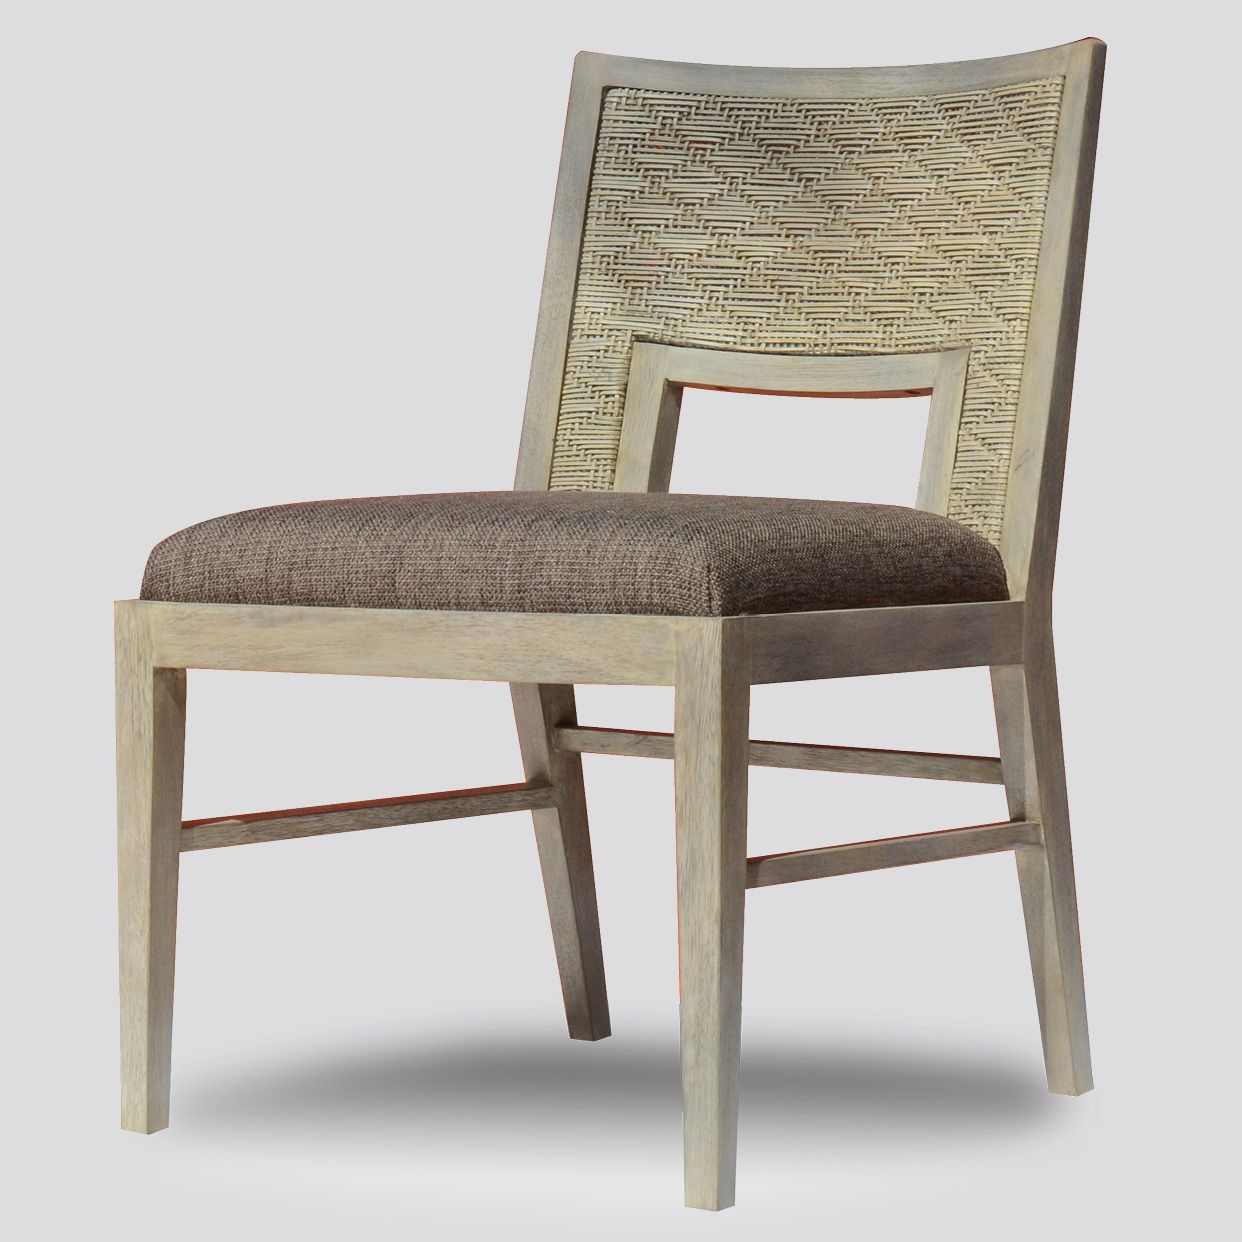 Side Chairs For Bedroom Moyo Side Chair Box Living Bedroom Designs Interior Design